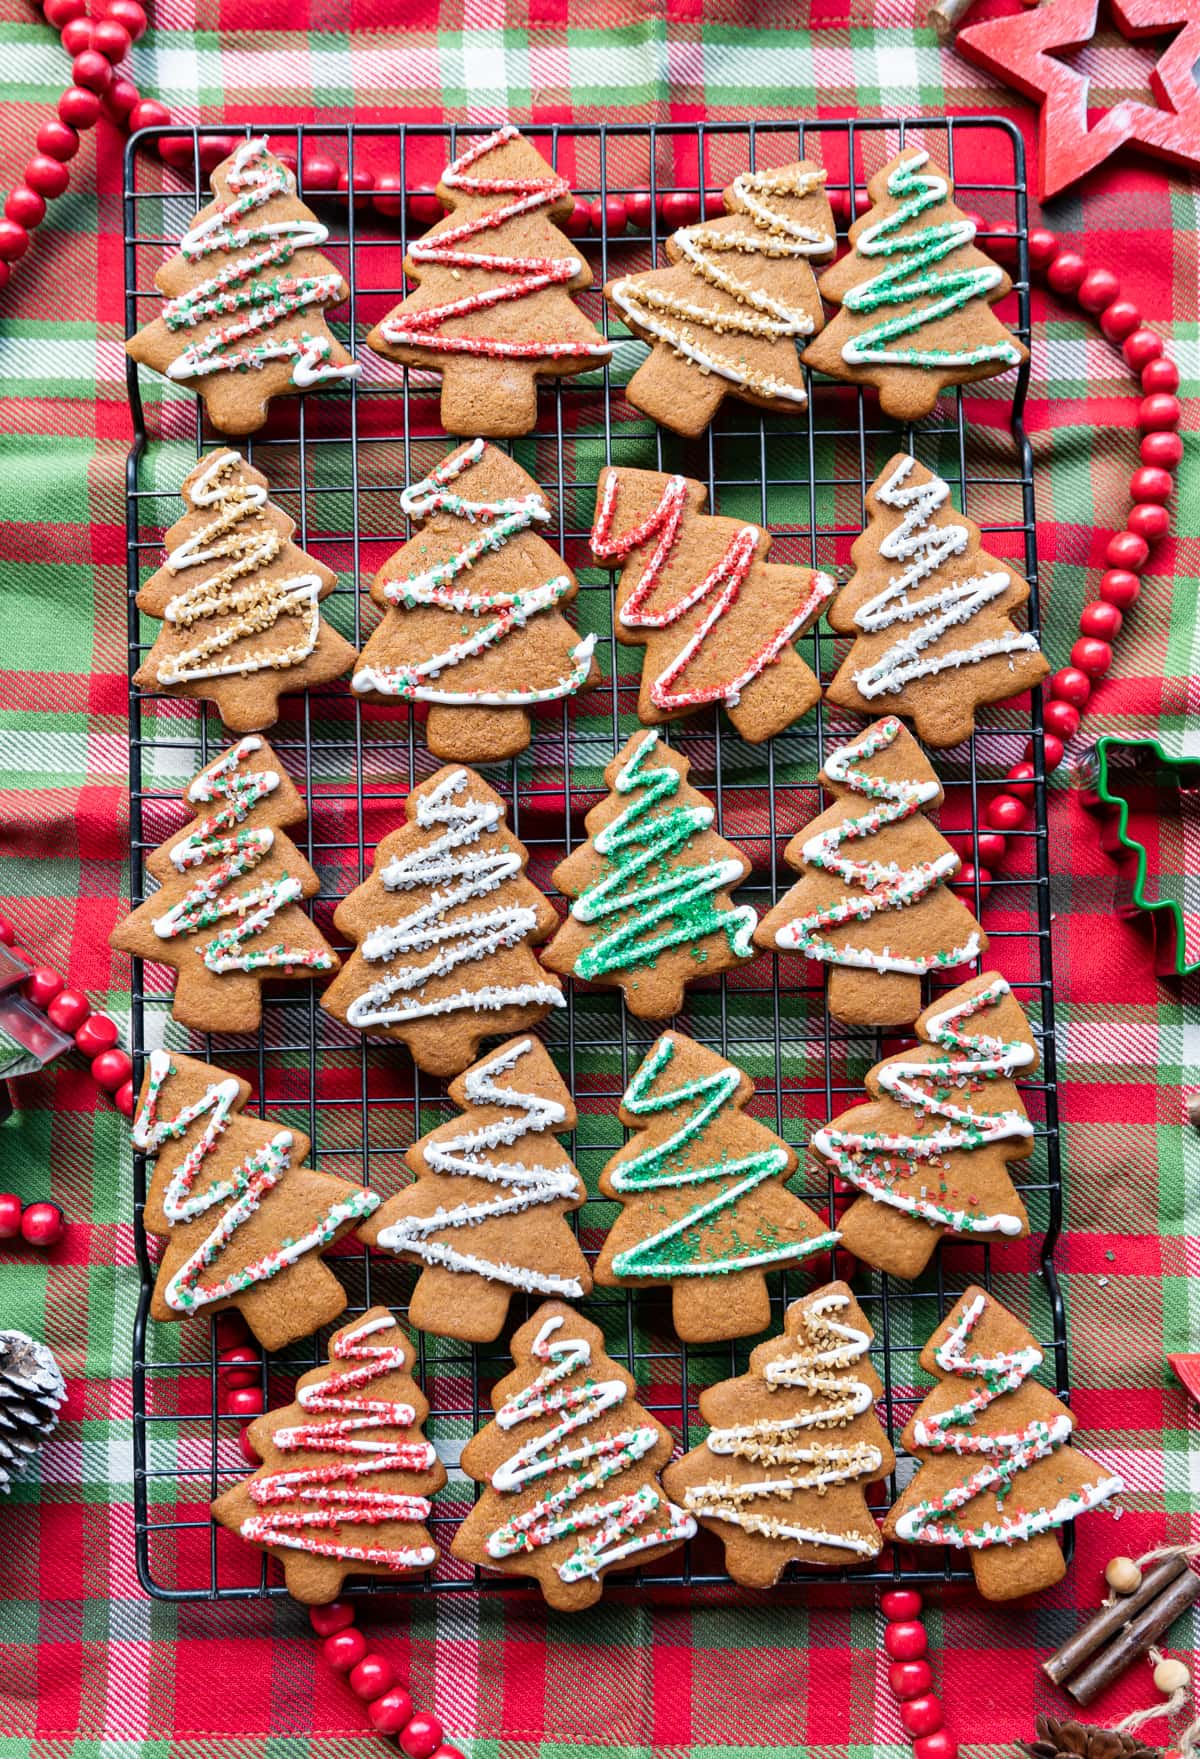 iced gingerbread christmas tree cookies on a wire rack on a red green and white plaid napkin